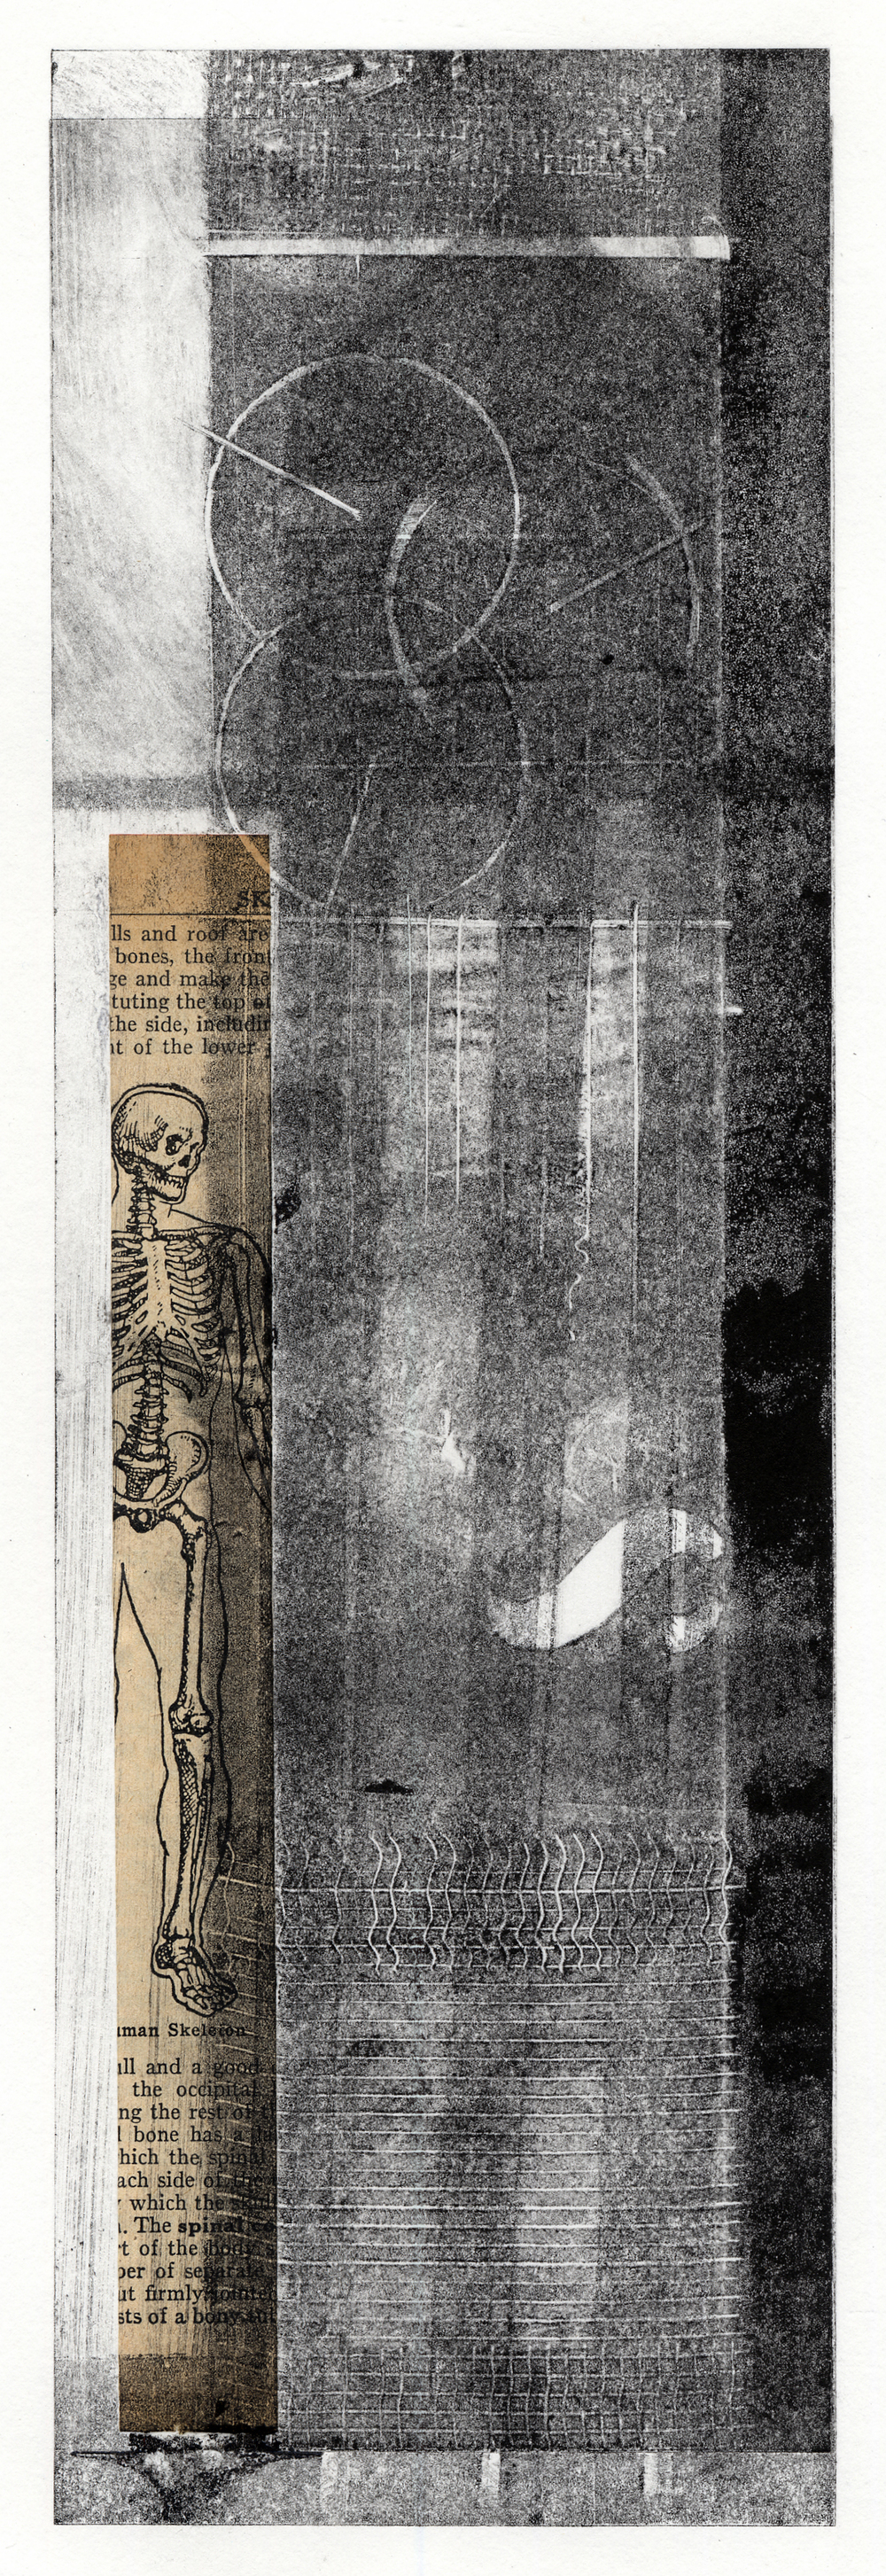 A tall monotype print with collage elements by Clive Knights